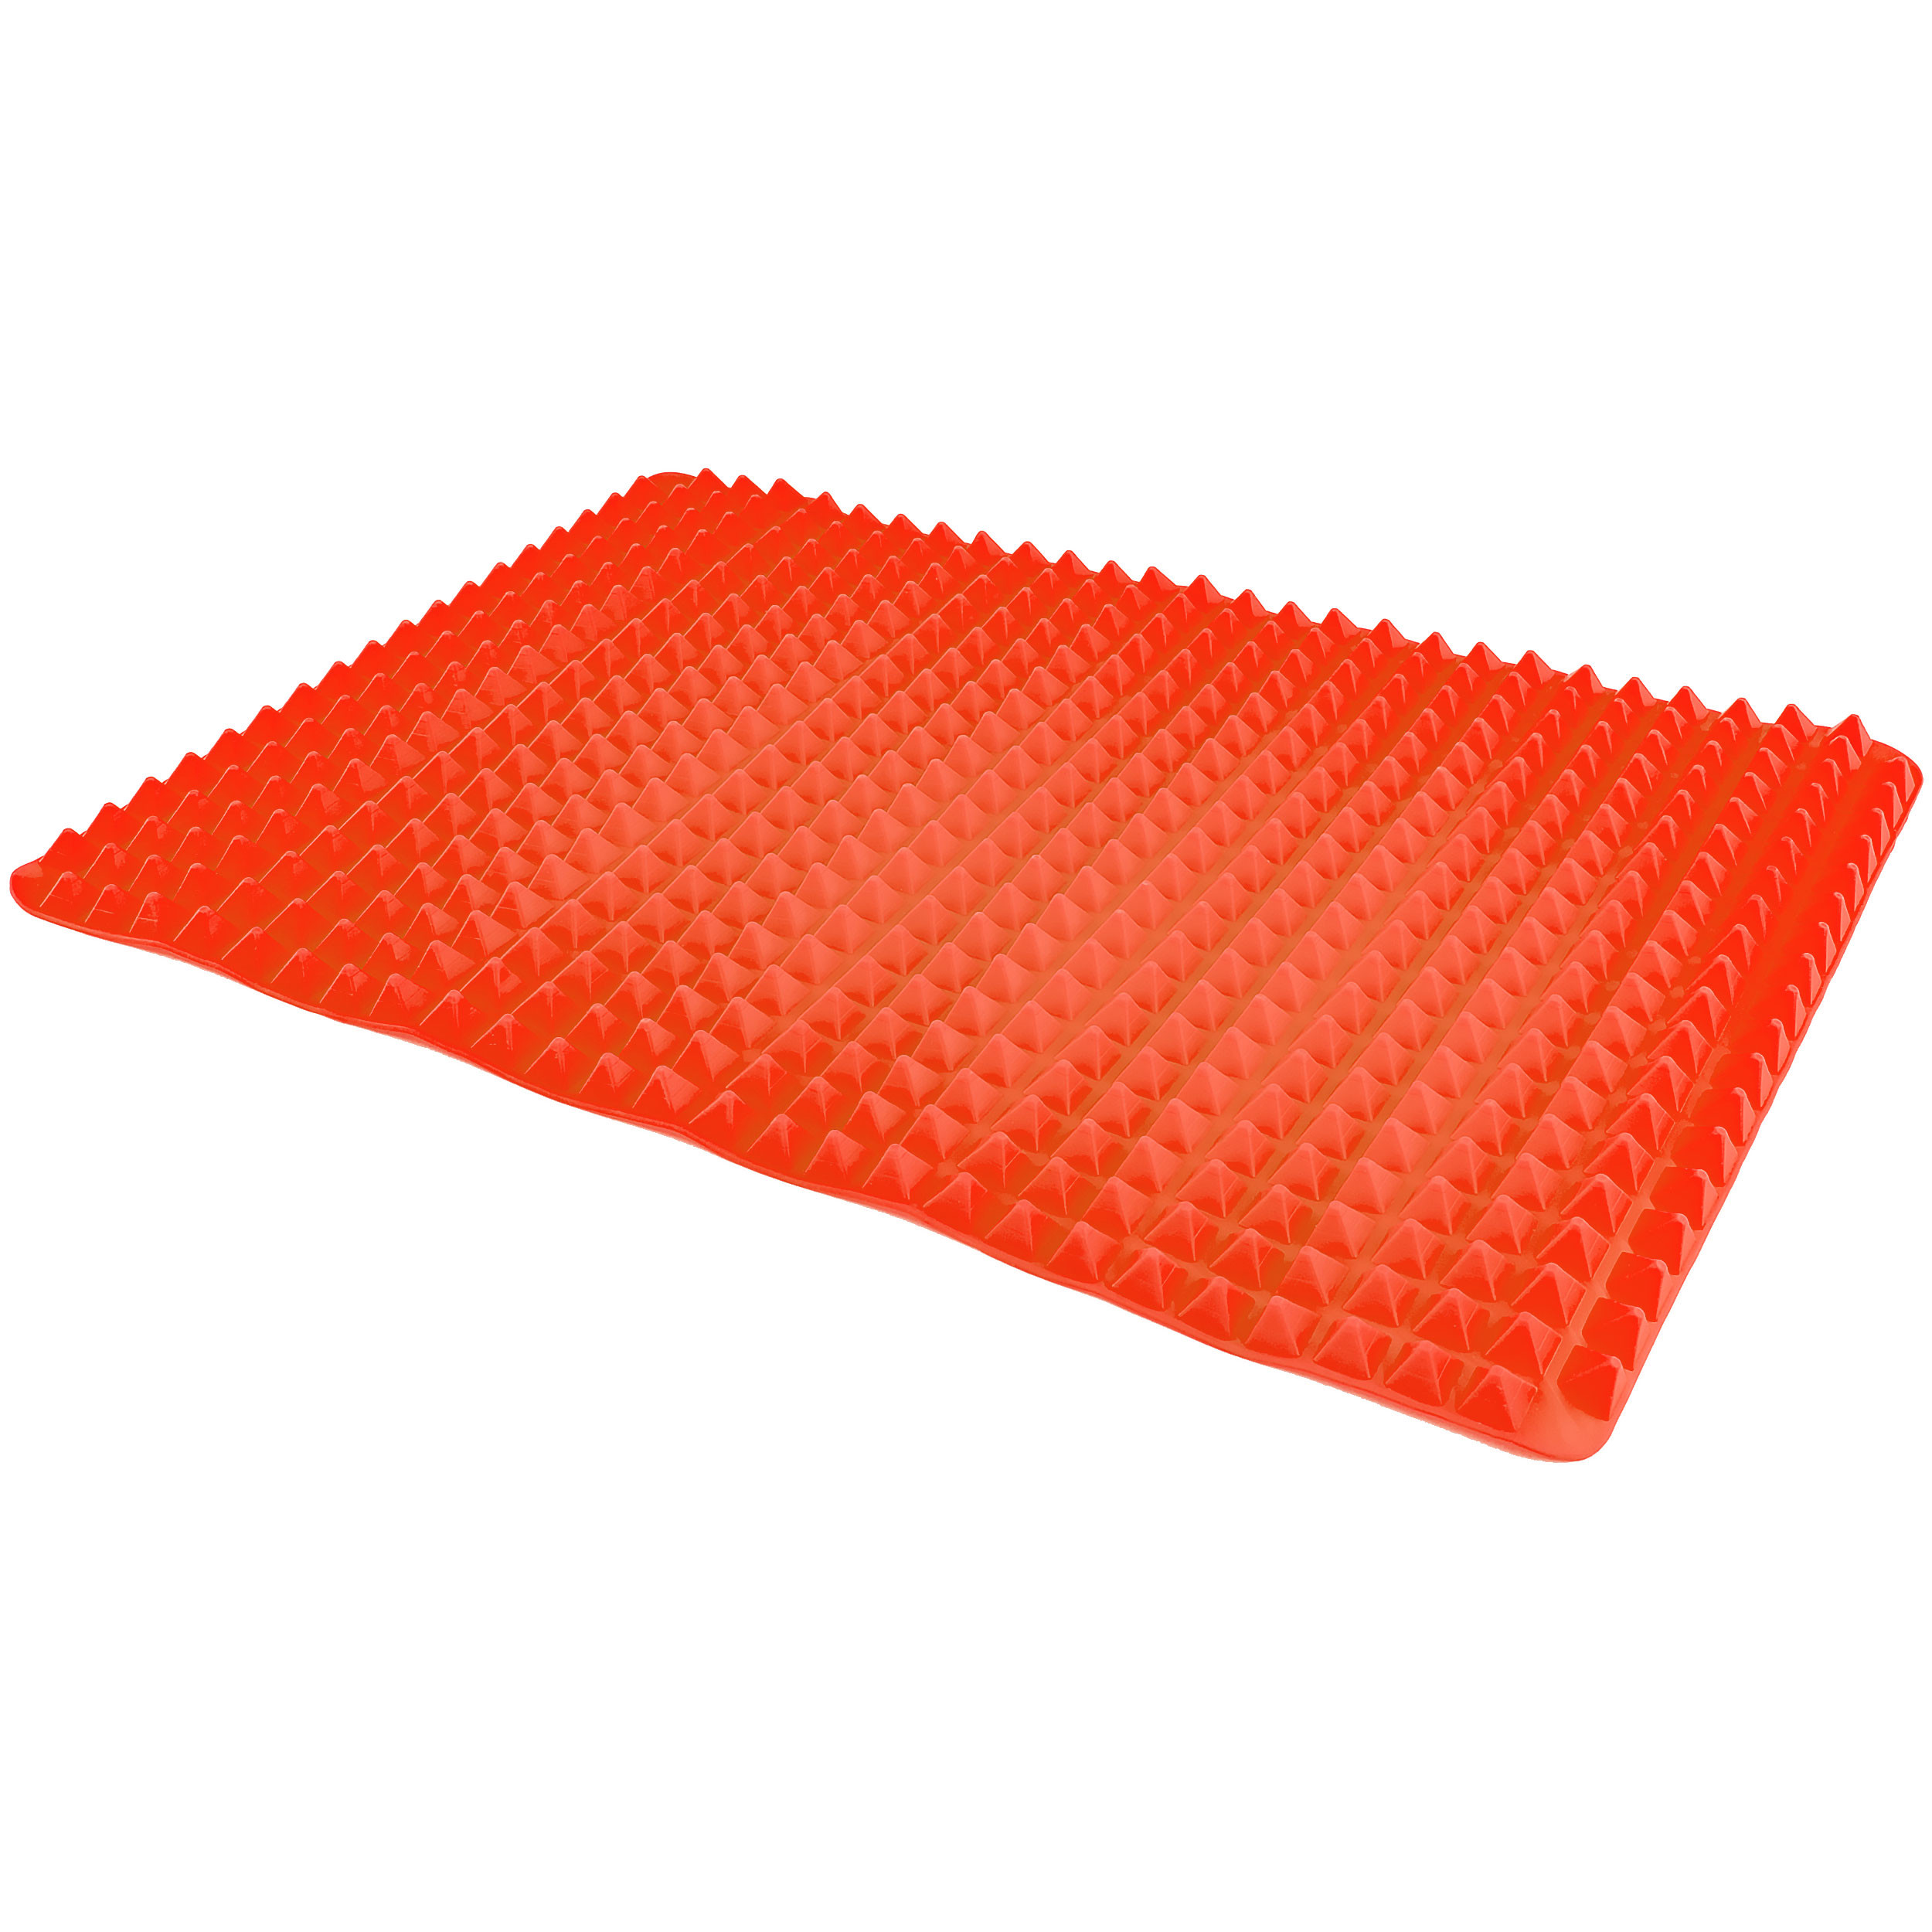 Southern Homewares SH-10177 Healthy Homewares Raised Silicone Baking Sheet Non-Stick Cooking Mat Oven Tray Liner Red, One Size,